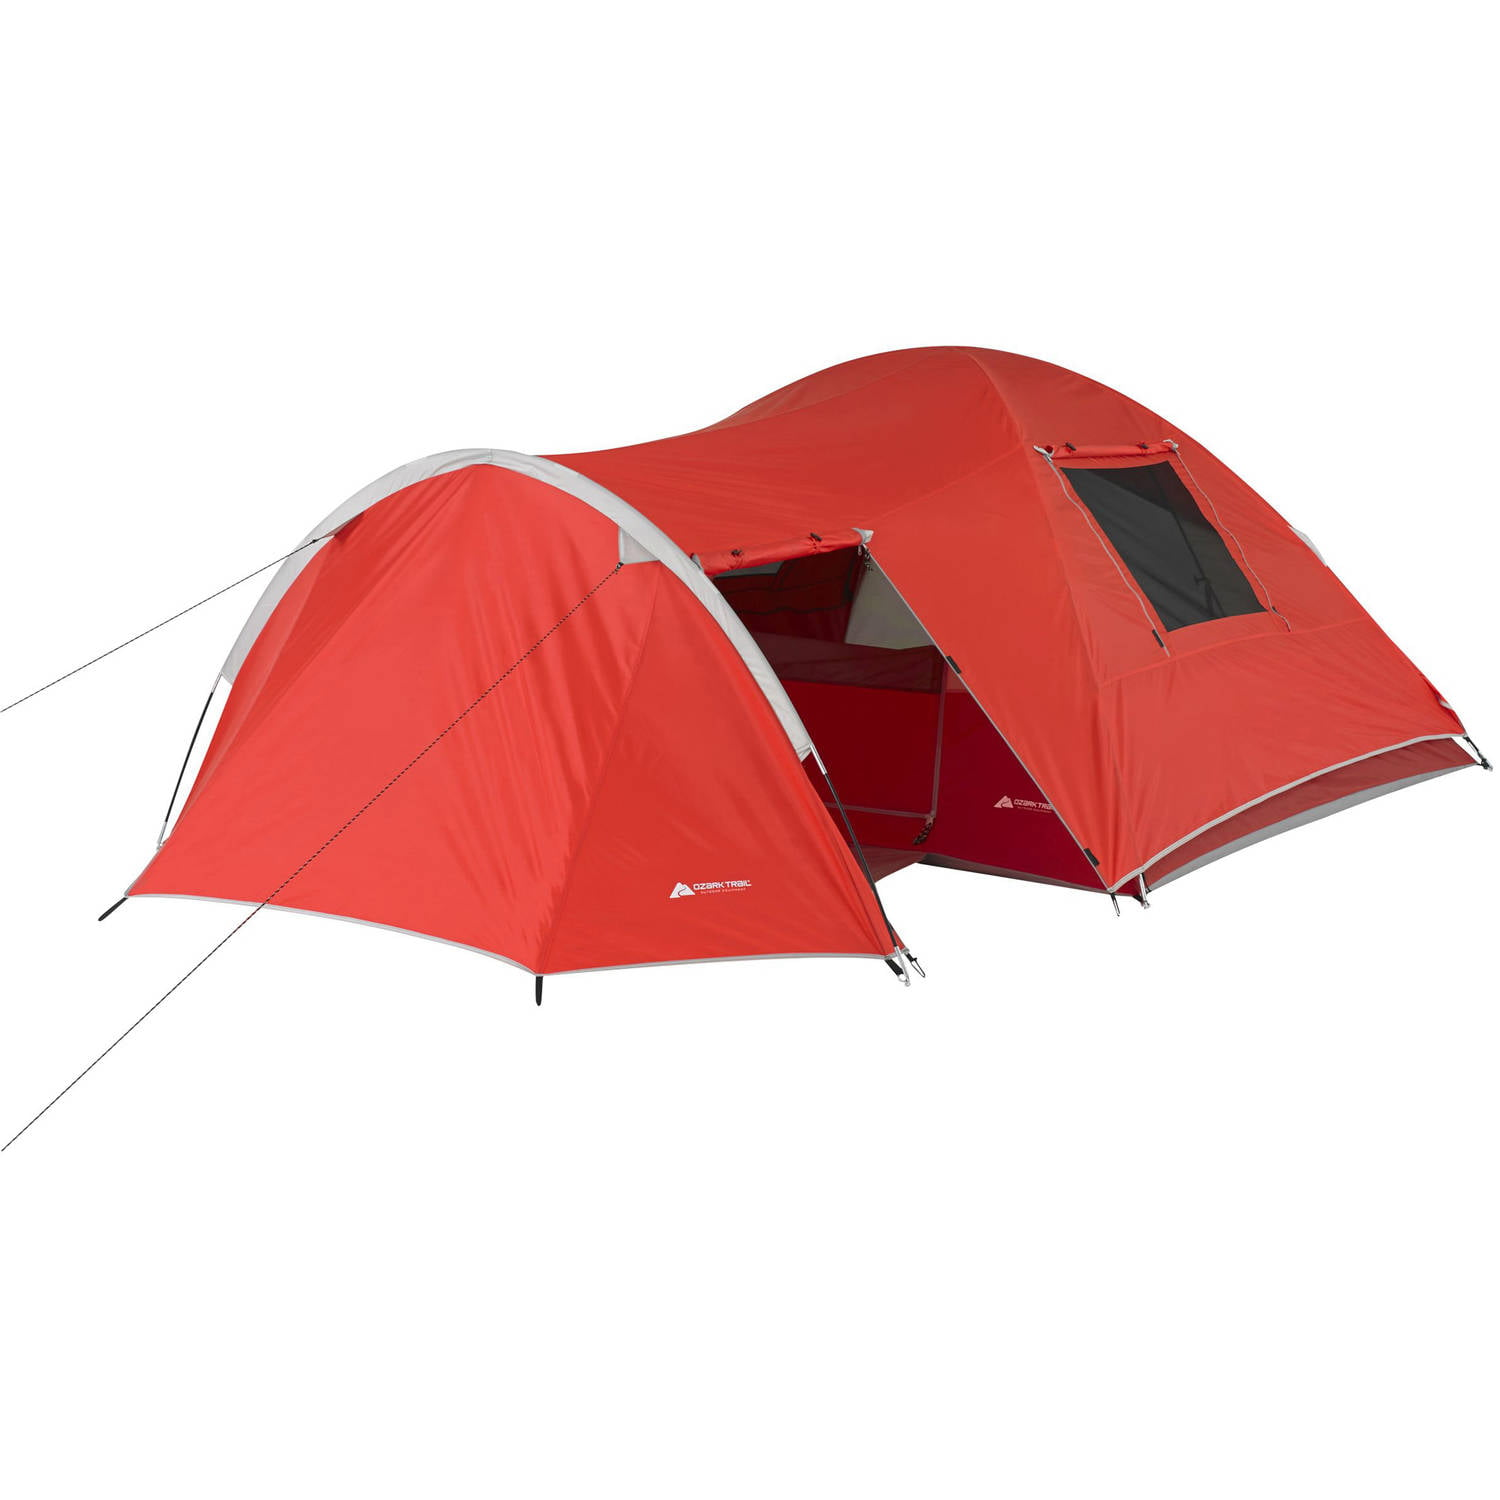 Ozark Trail 4-Person Dome Tent with Vestibule and Full Coverage Fly  sc 1 st  Walmart & Ozark Trail Tents